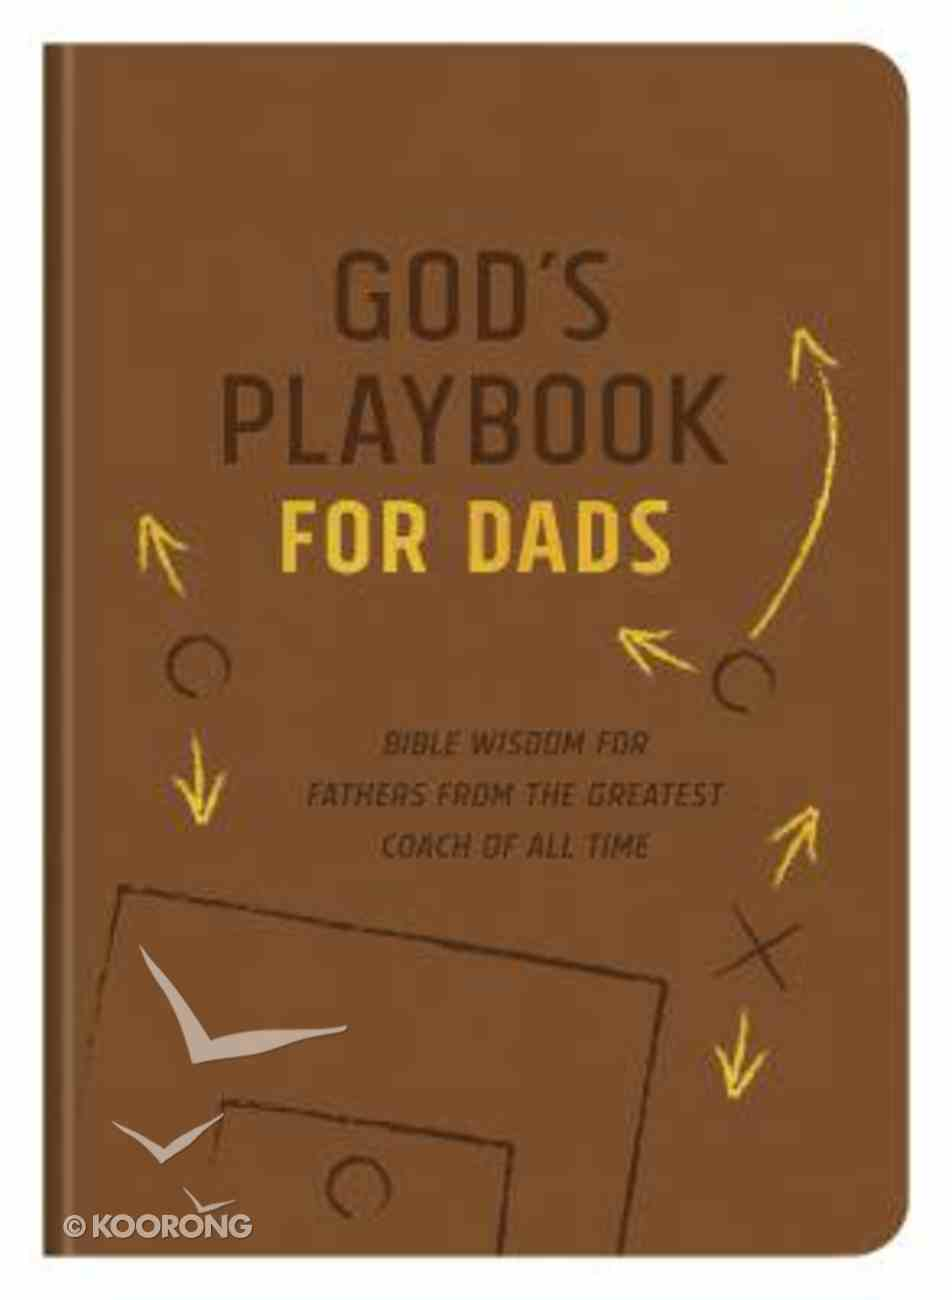 God's Playbook For Dads: Bible Wisdom For Fathers From the Greatest Coach of All Time Paperback